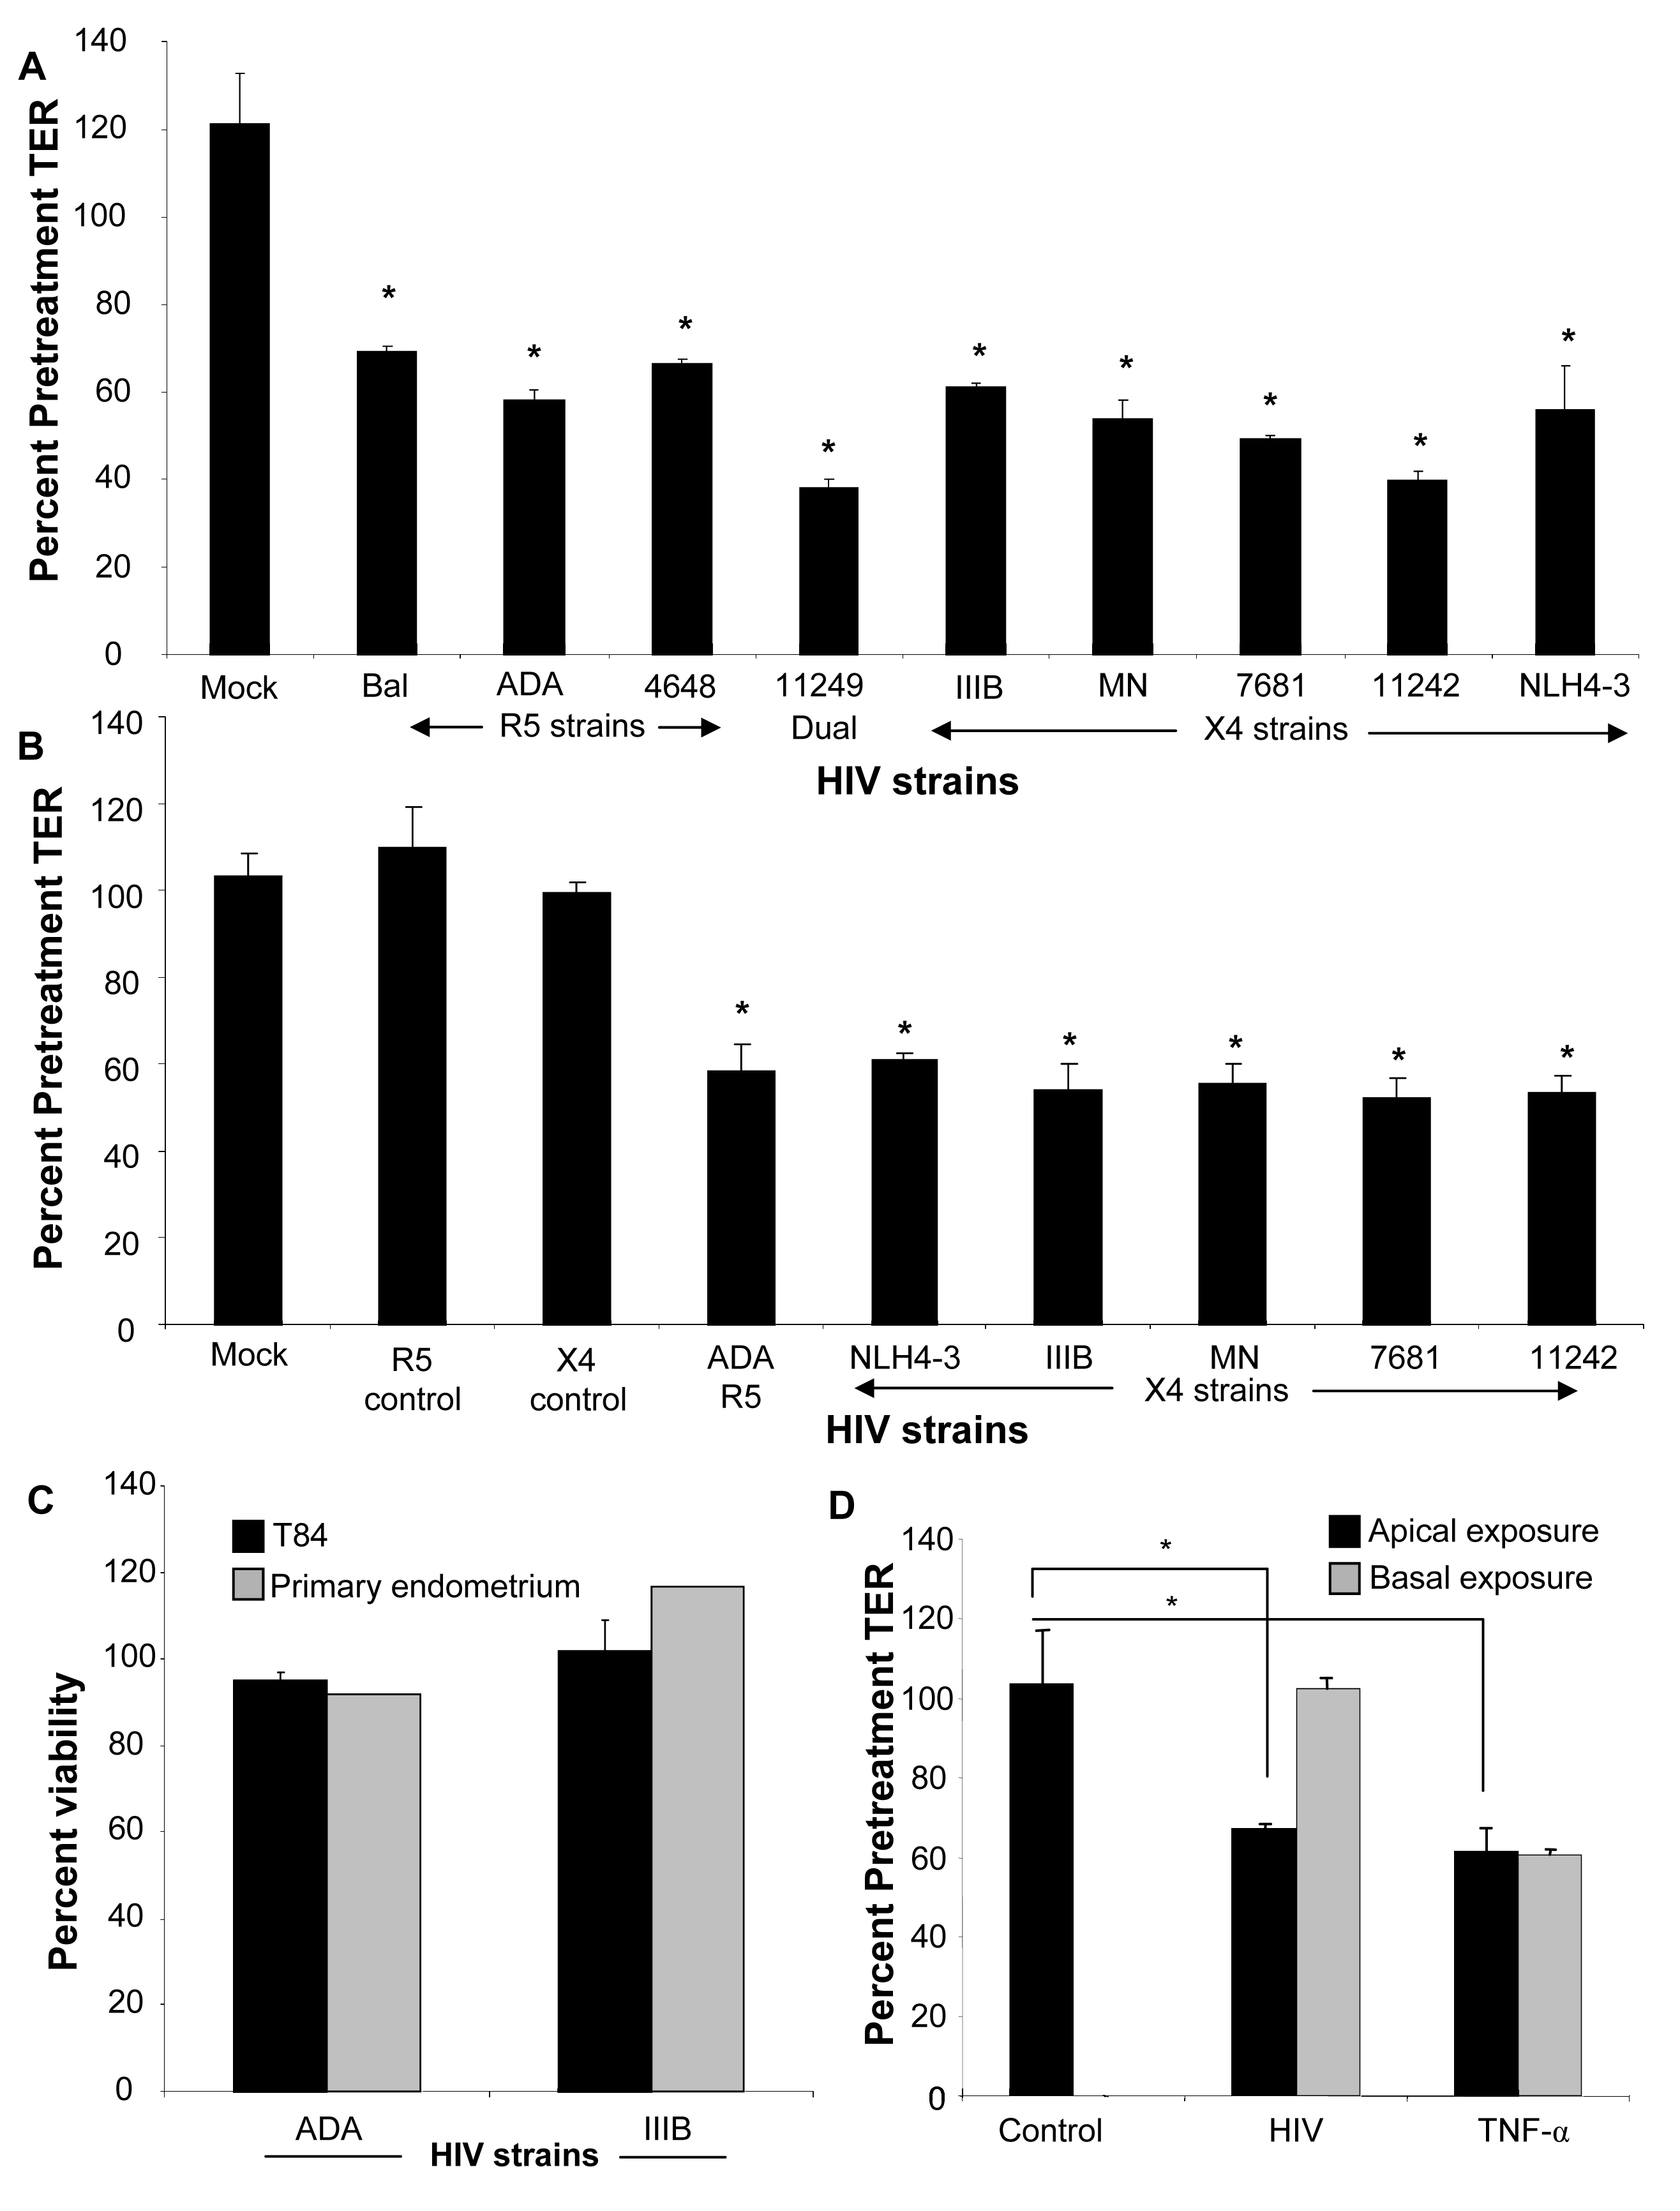 Primary endometrial epithelial monolayers (A) and T84 intestinal epithelial cell line (B) were exposed to 10<sup>6</sup> infectious viral units/ml of HIV-1 laboratory strains Bal, NL4-3, ADA (R5 tropic) and IIIB, MN (X4 tropic) and four clinical strains 4648 (R5 tropic) 11242, 7681 (X4 tropic) and 11249 (dual tropic).